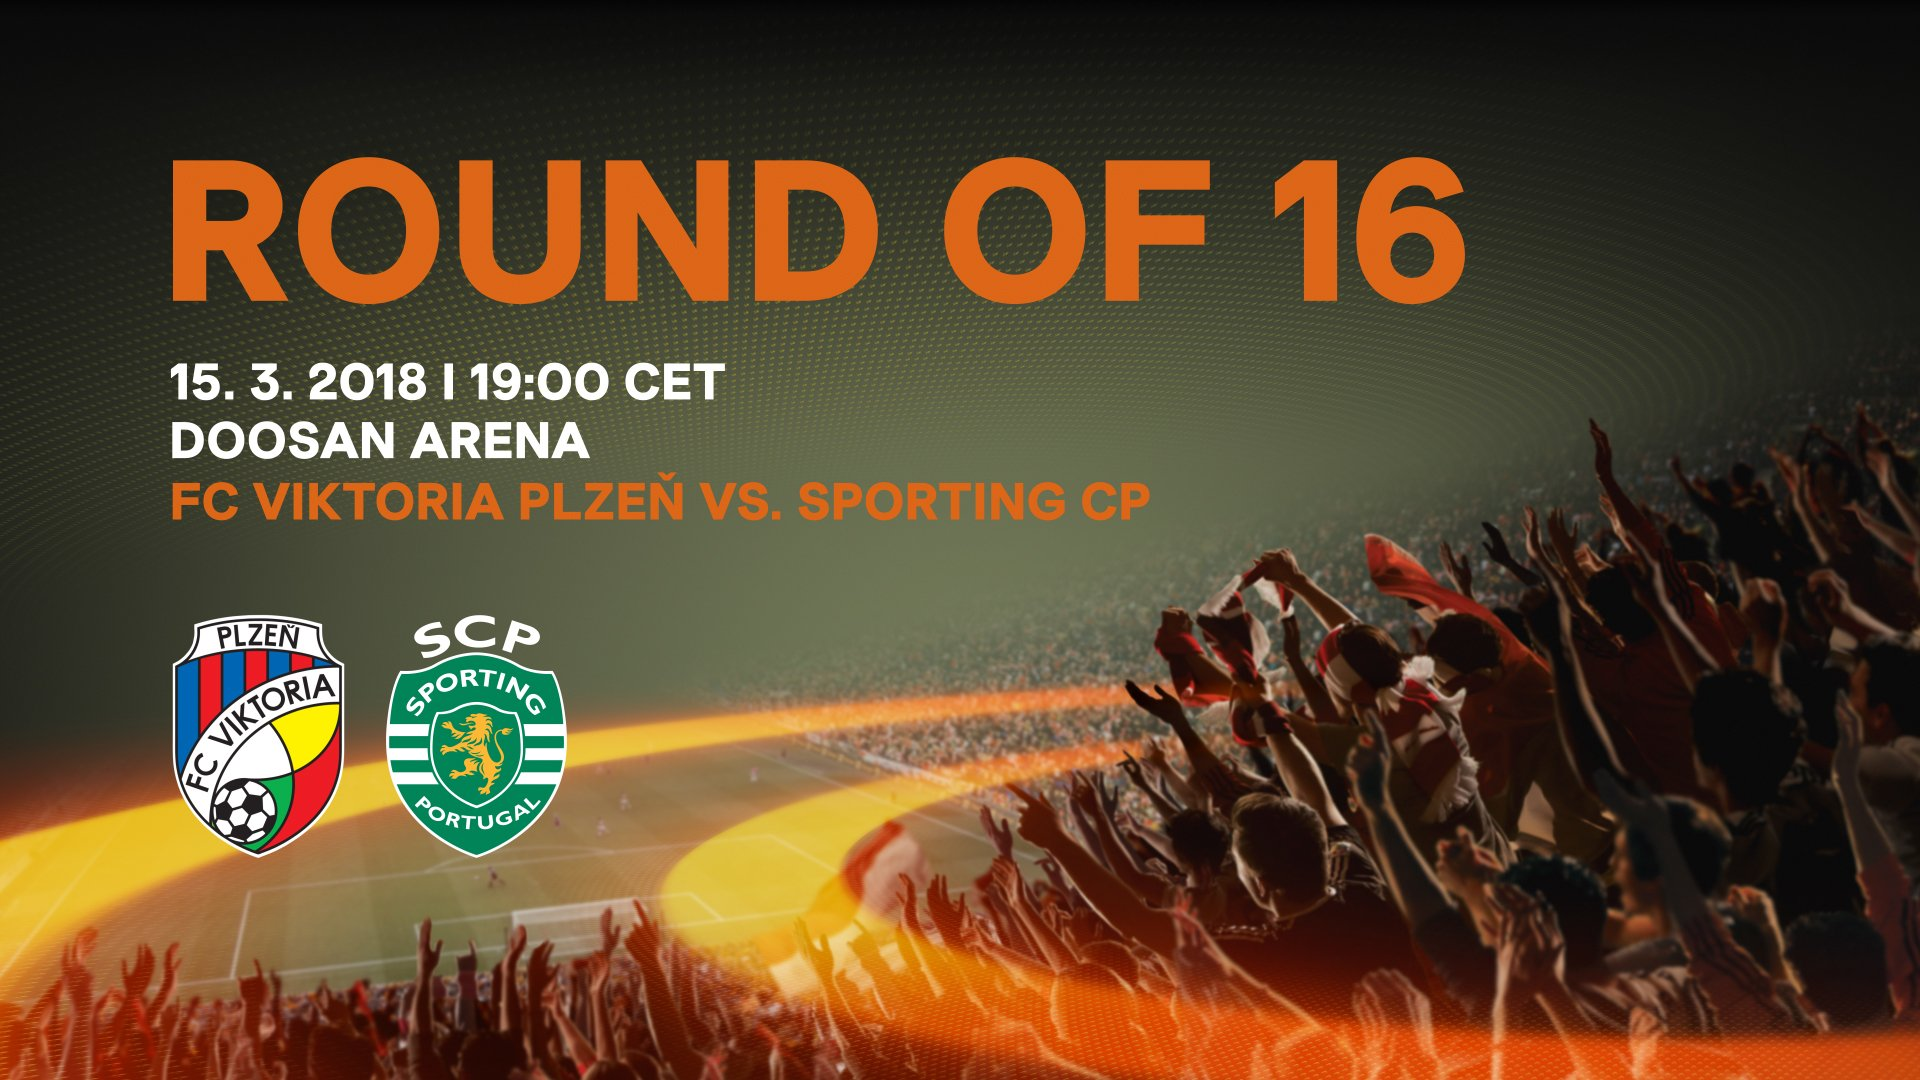 FC Viktoria Plzeň vs. Sporting CP: Tickets are still for sale